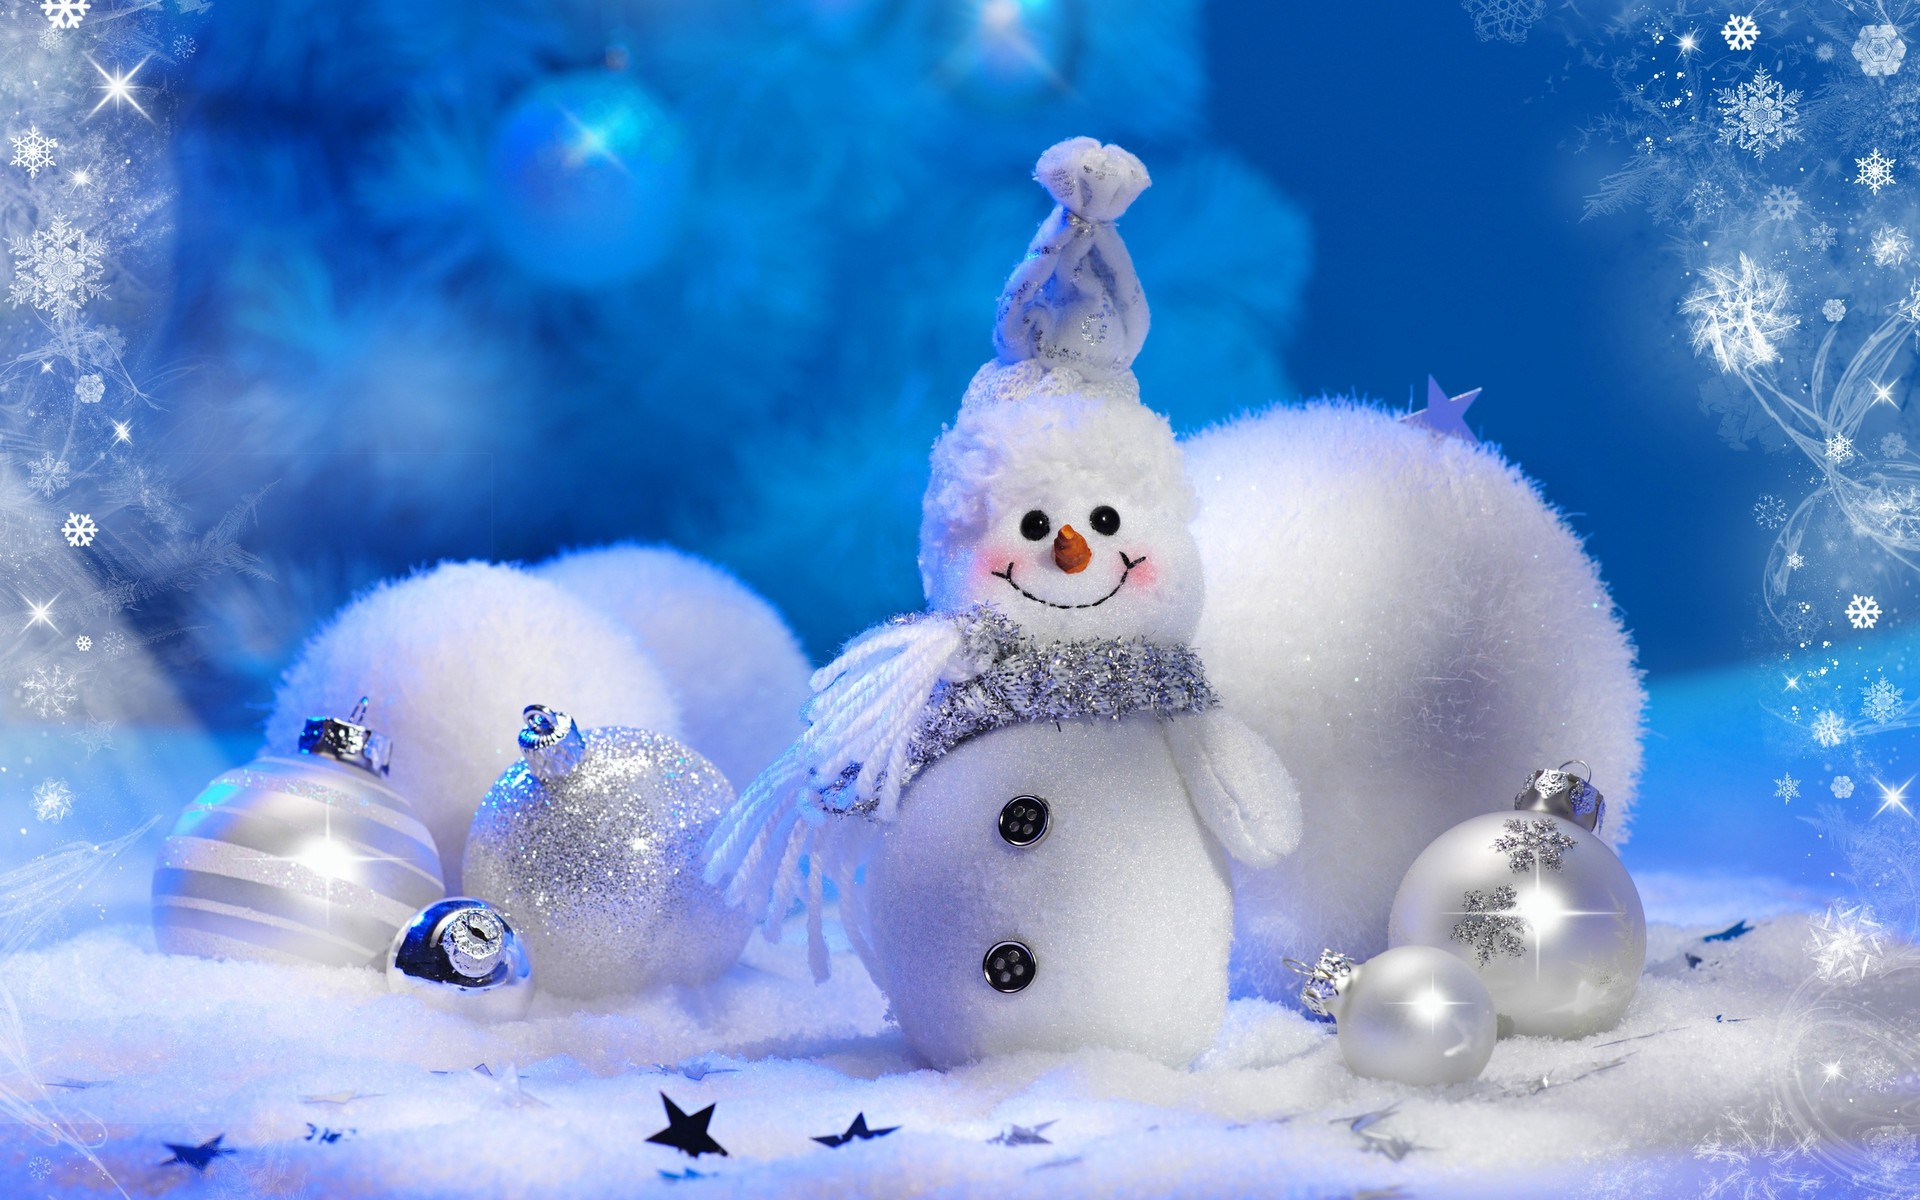 frosty the snowman wallpaper (56+ images)